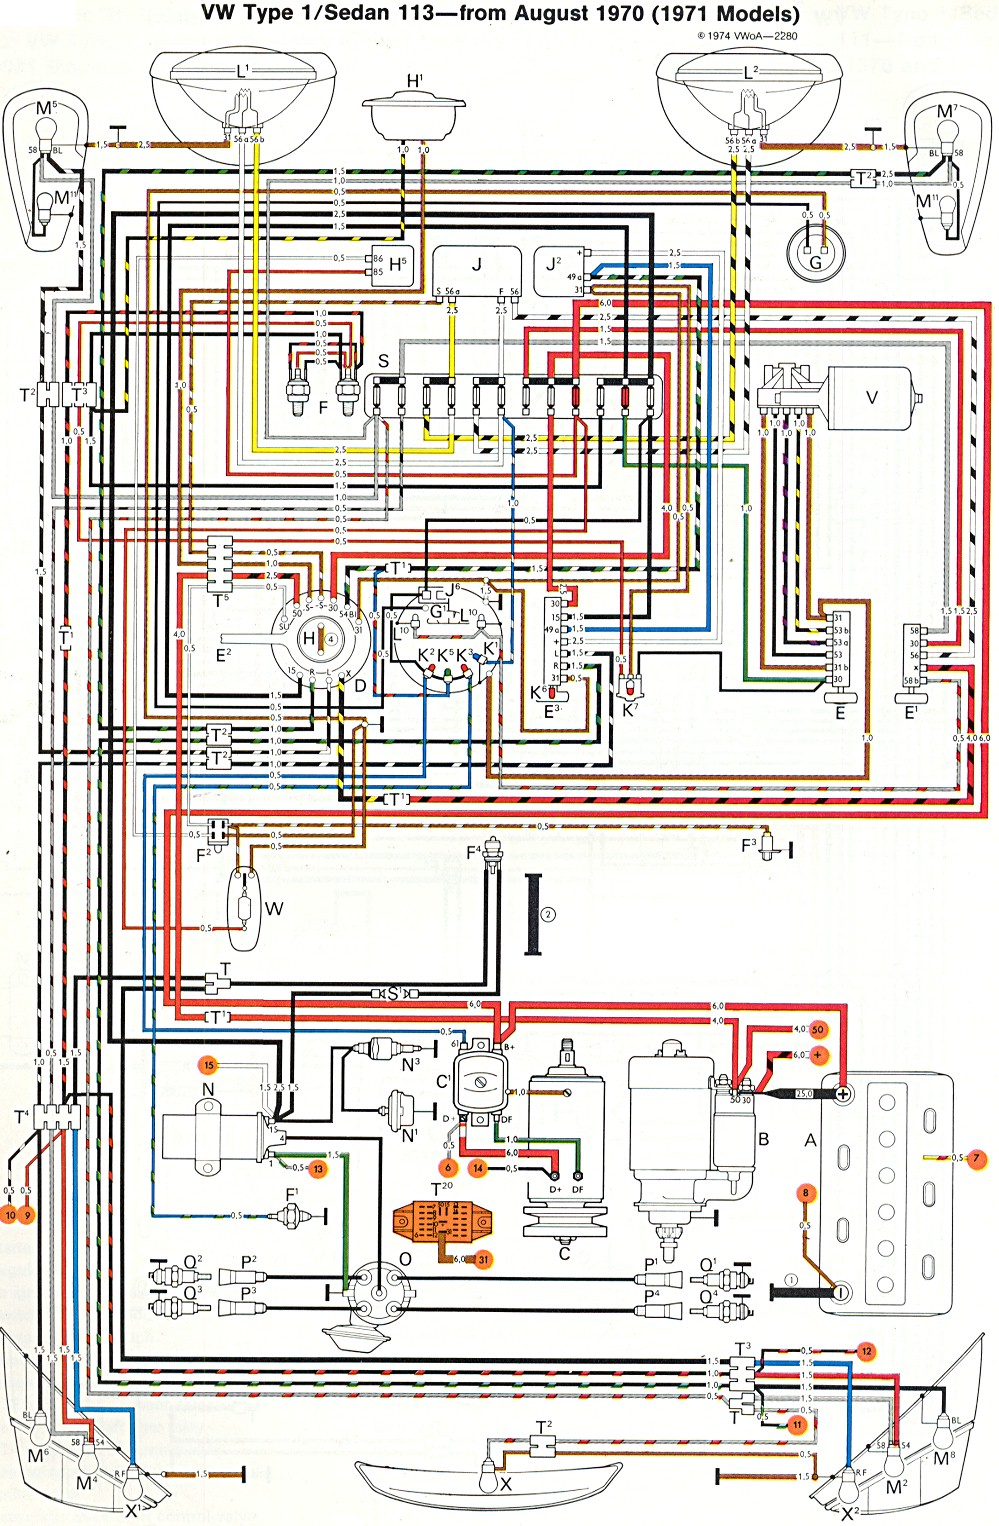 bug_super_71 1971 super beetle wiring diagram thegoldenbug com 1970 vw bug wiring diagram at gsmportal.co